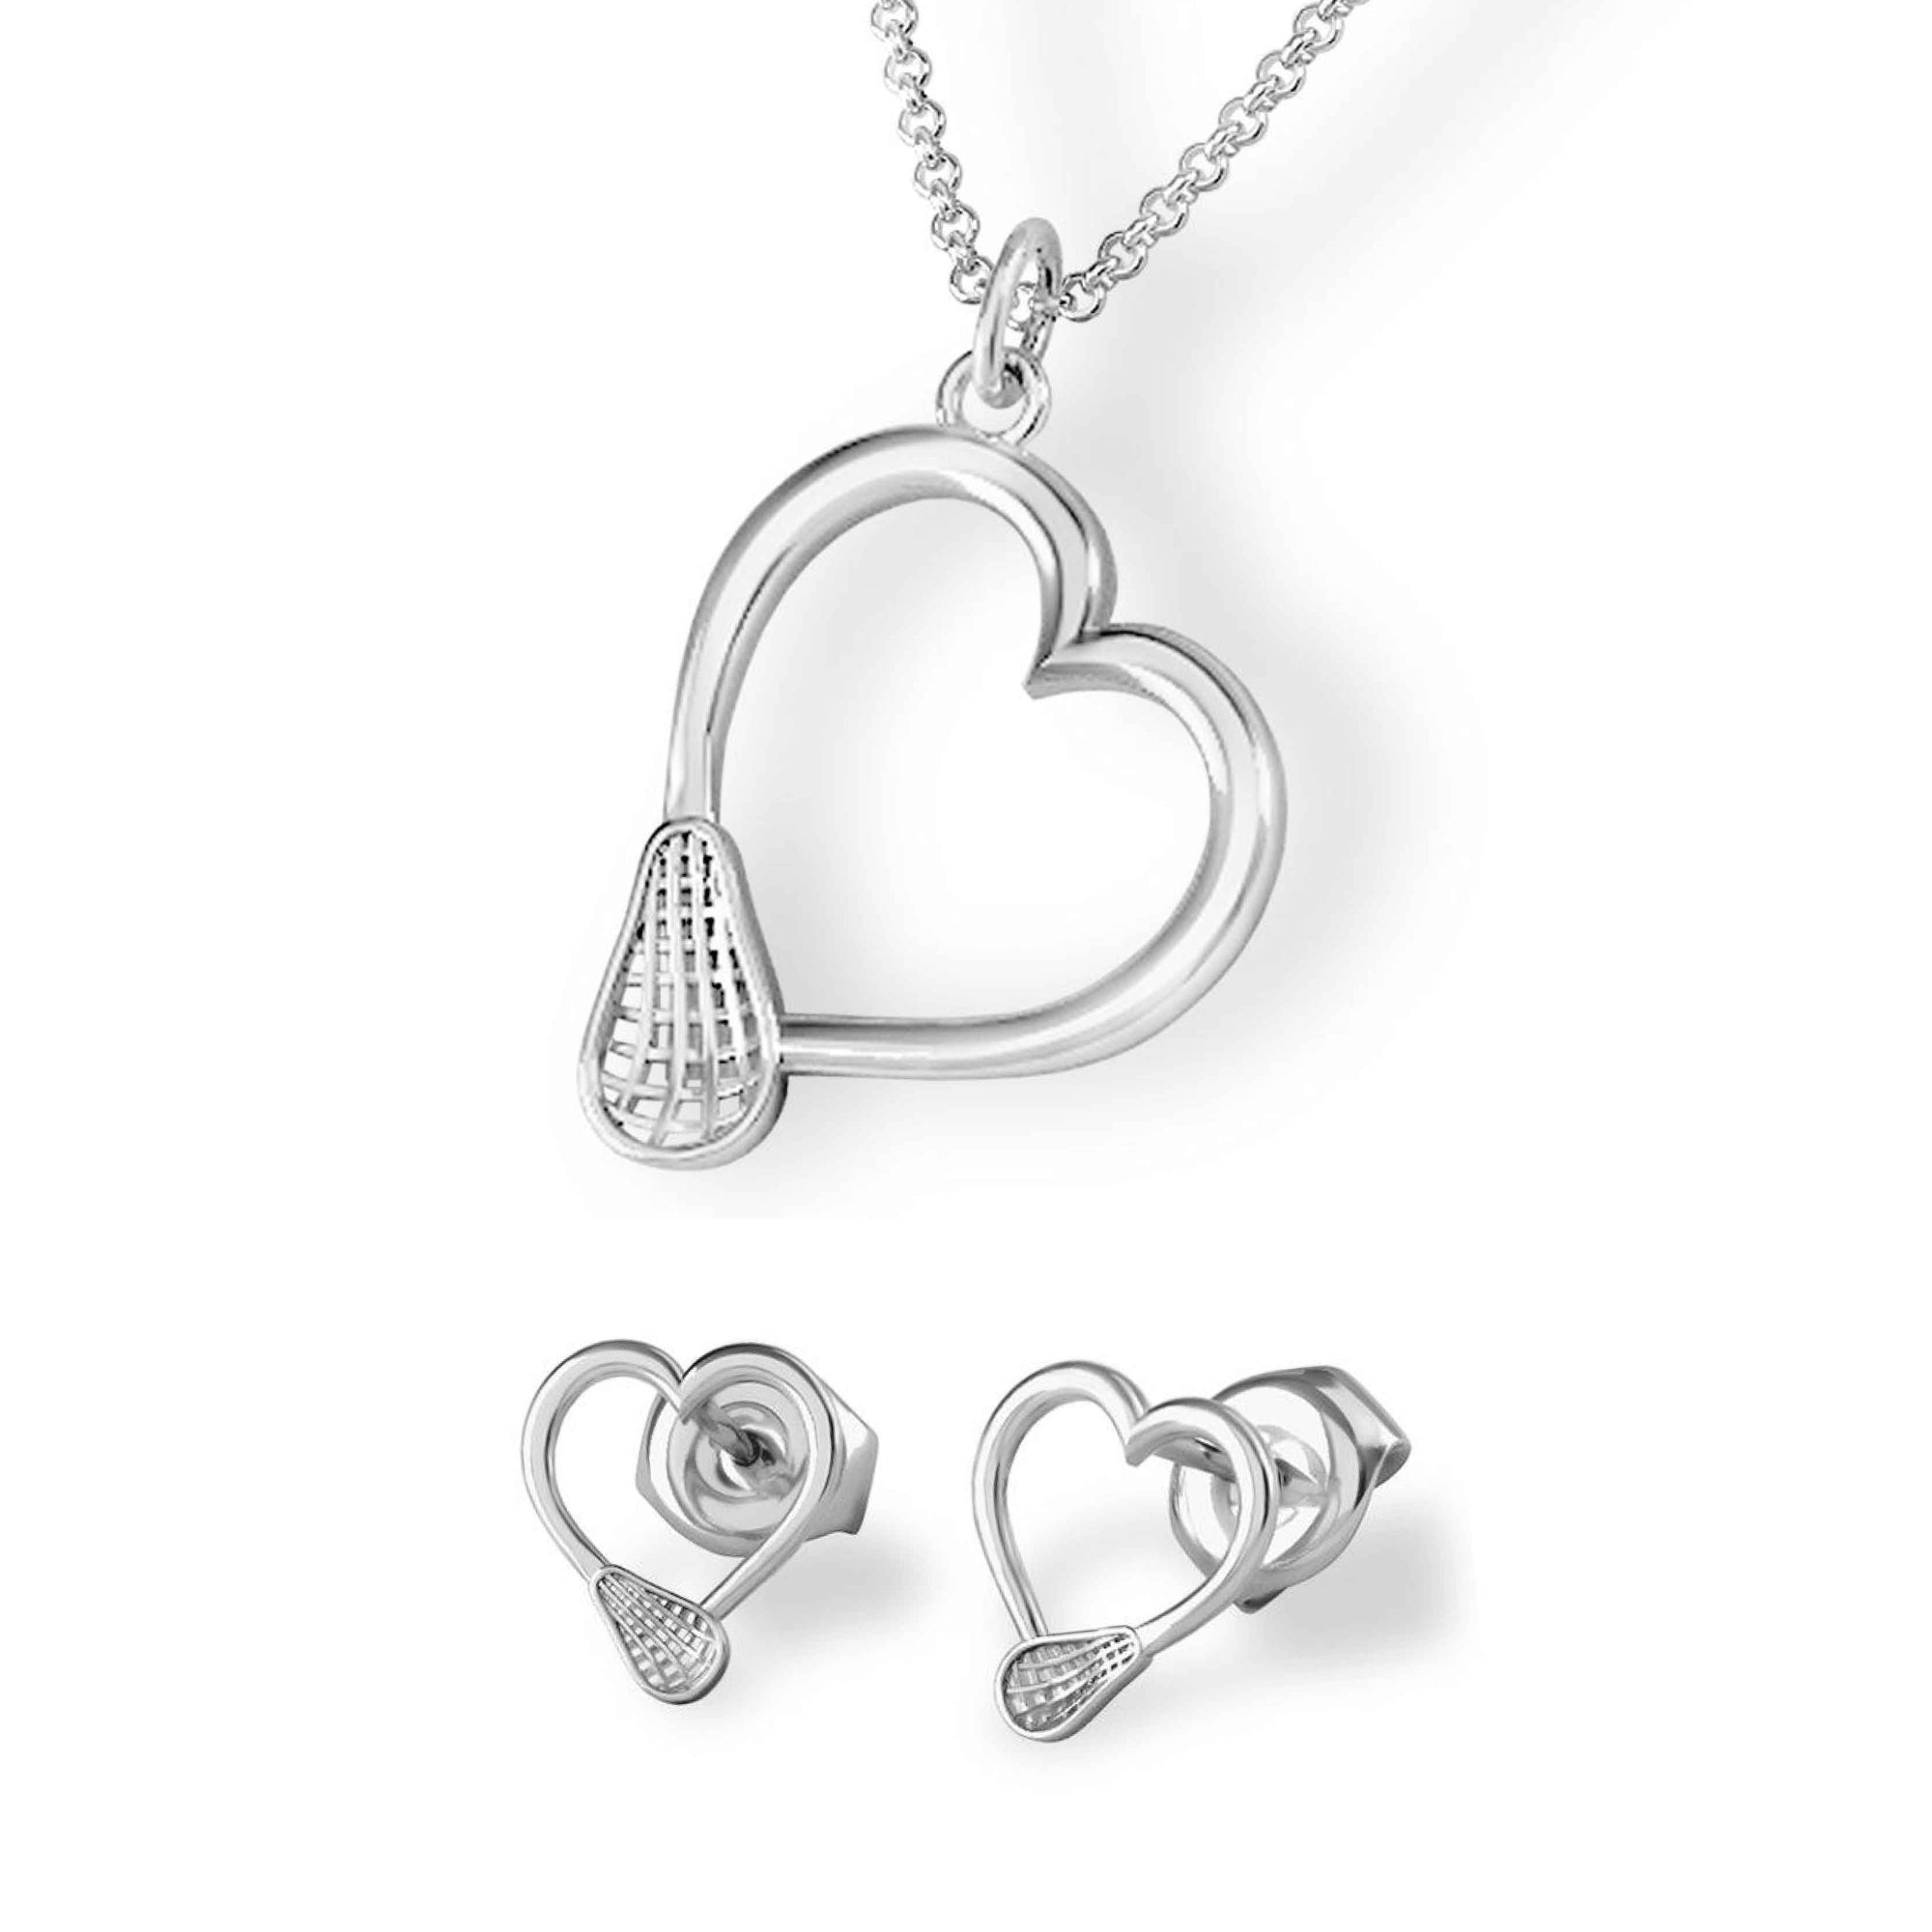 Lacrosse Heart Pendant and Earrings